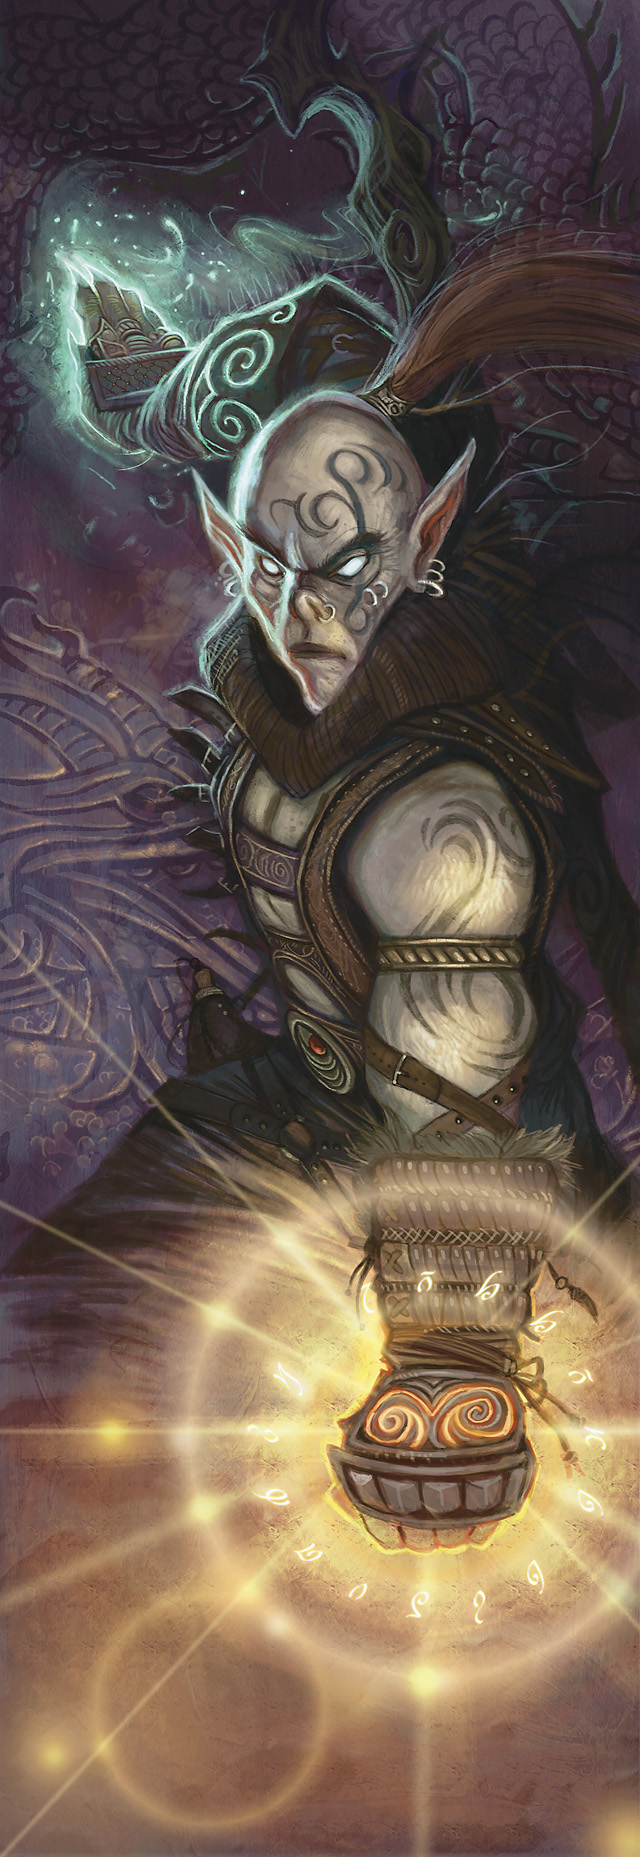 {$tags} Githzerai - by William O'Connor Player's Handbook 3 (2010-03) © Wizards of the Coast & Hasbro